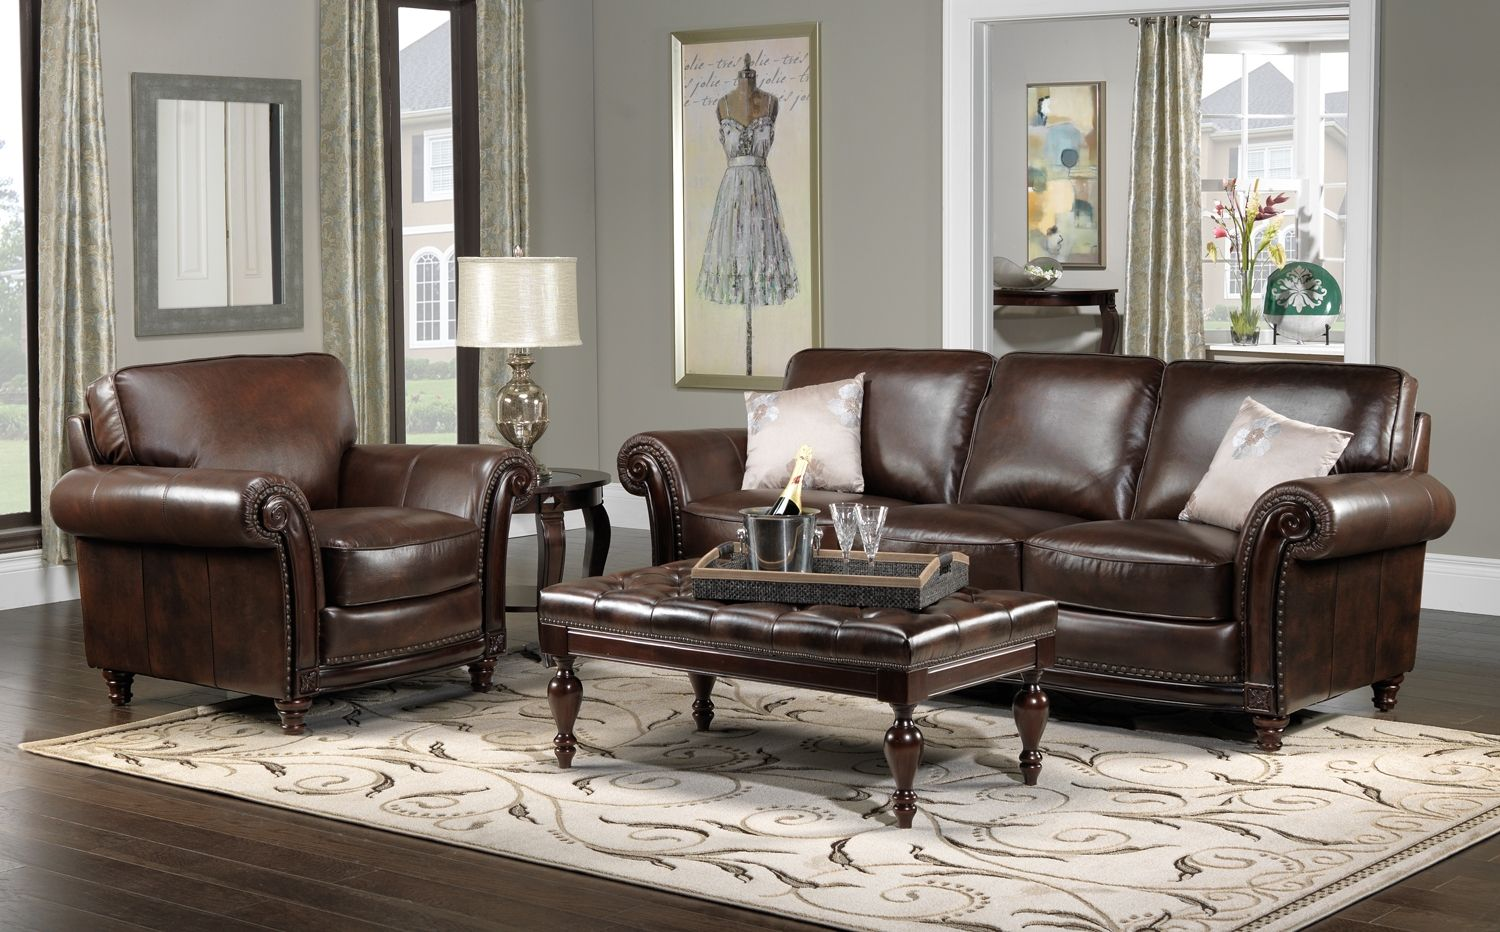 living room decor with brown leather sofa house decor ideas for brown leather furniture gngkxz 27662